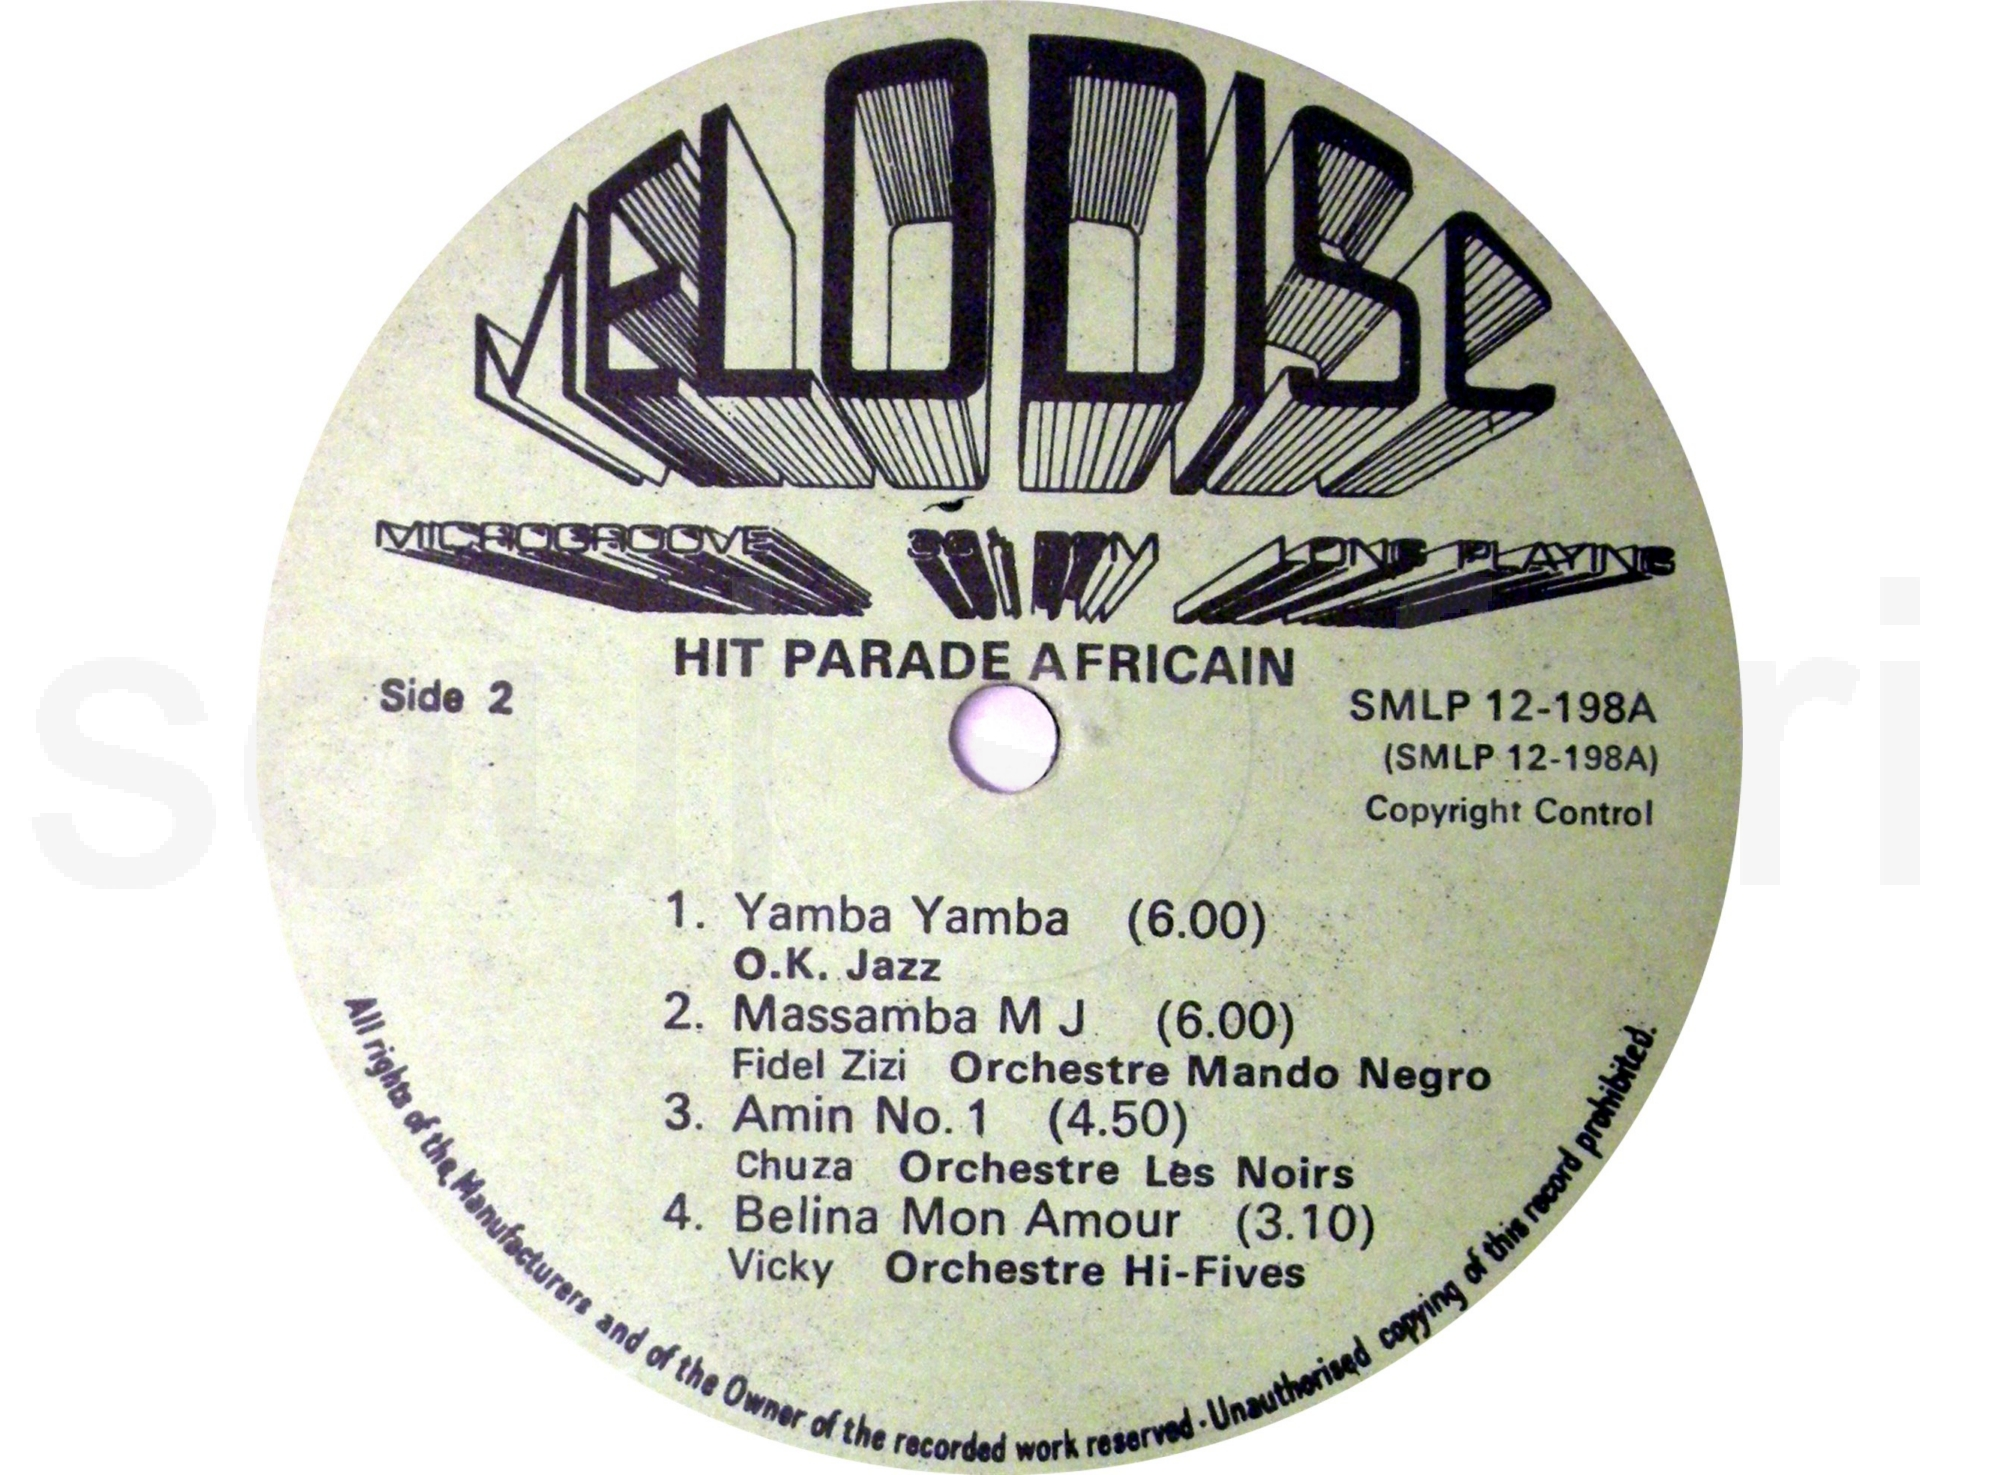 hit parade africain label side 2